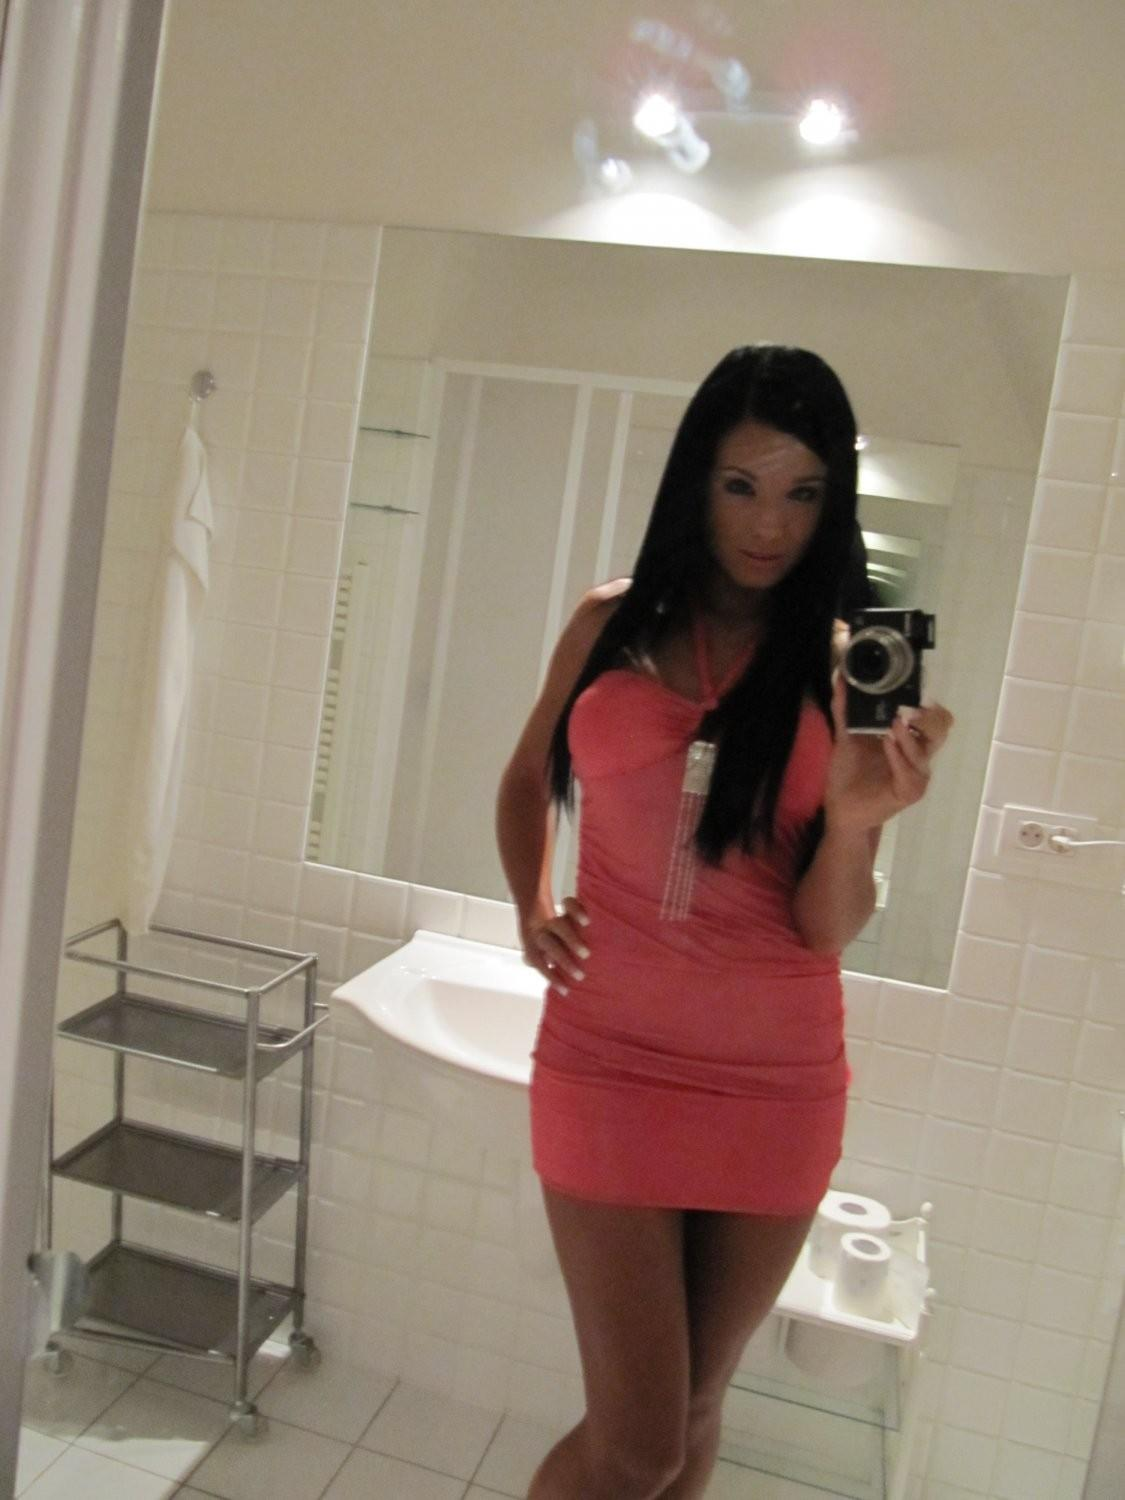 ashley-bulgari-self-shot-bathroom-mirror-02